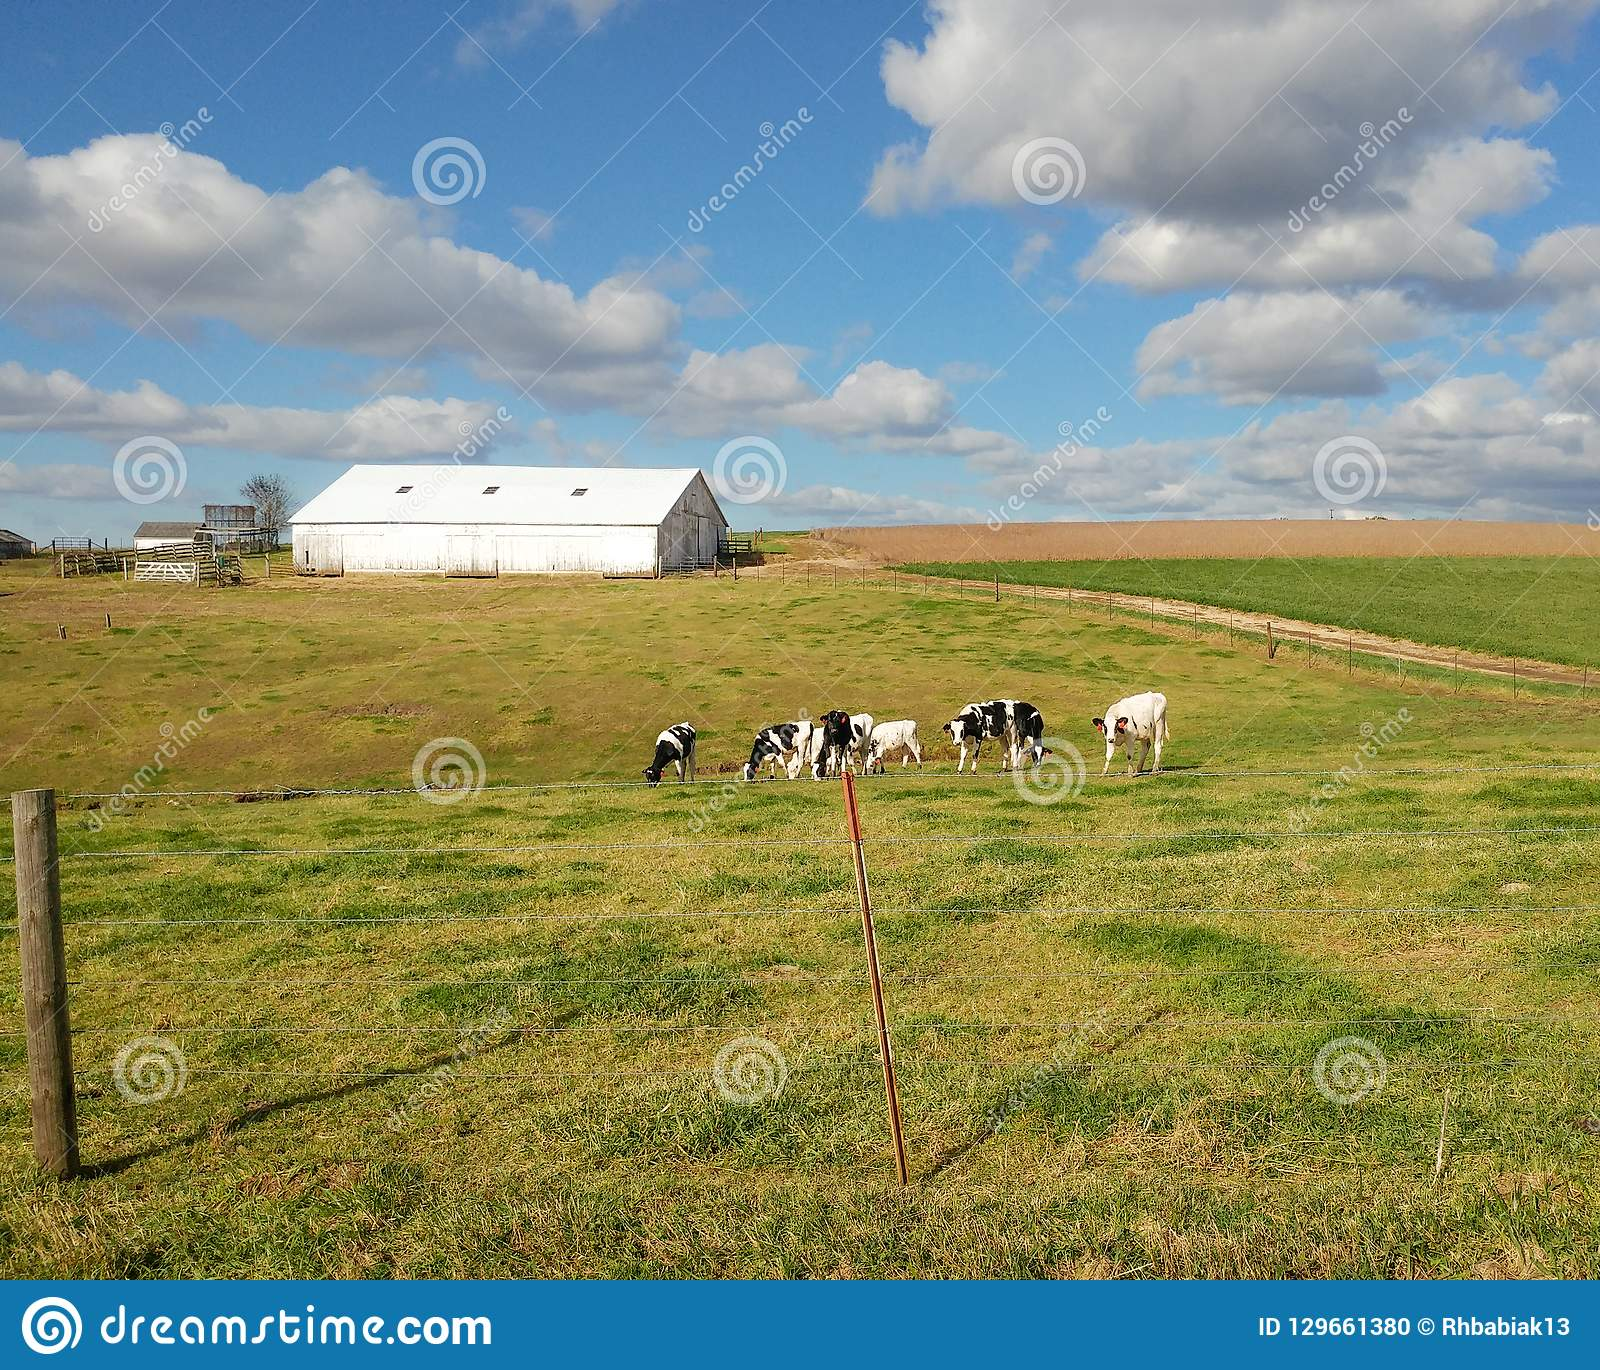 White Barn with Dairy Cows in the Pasture